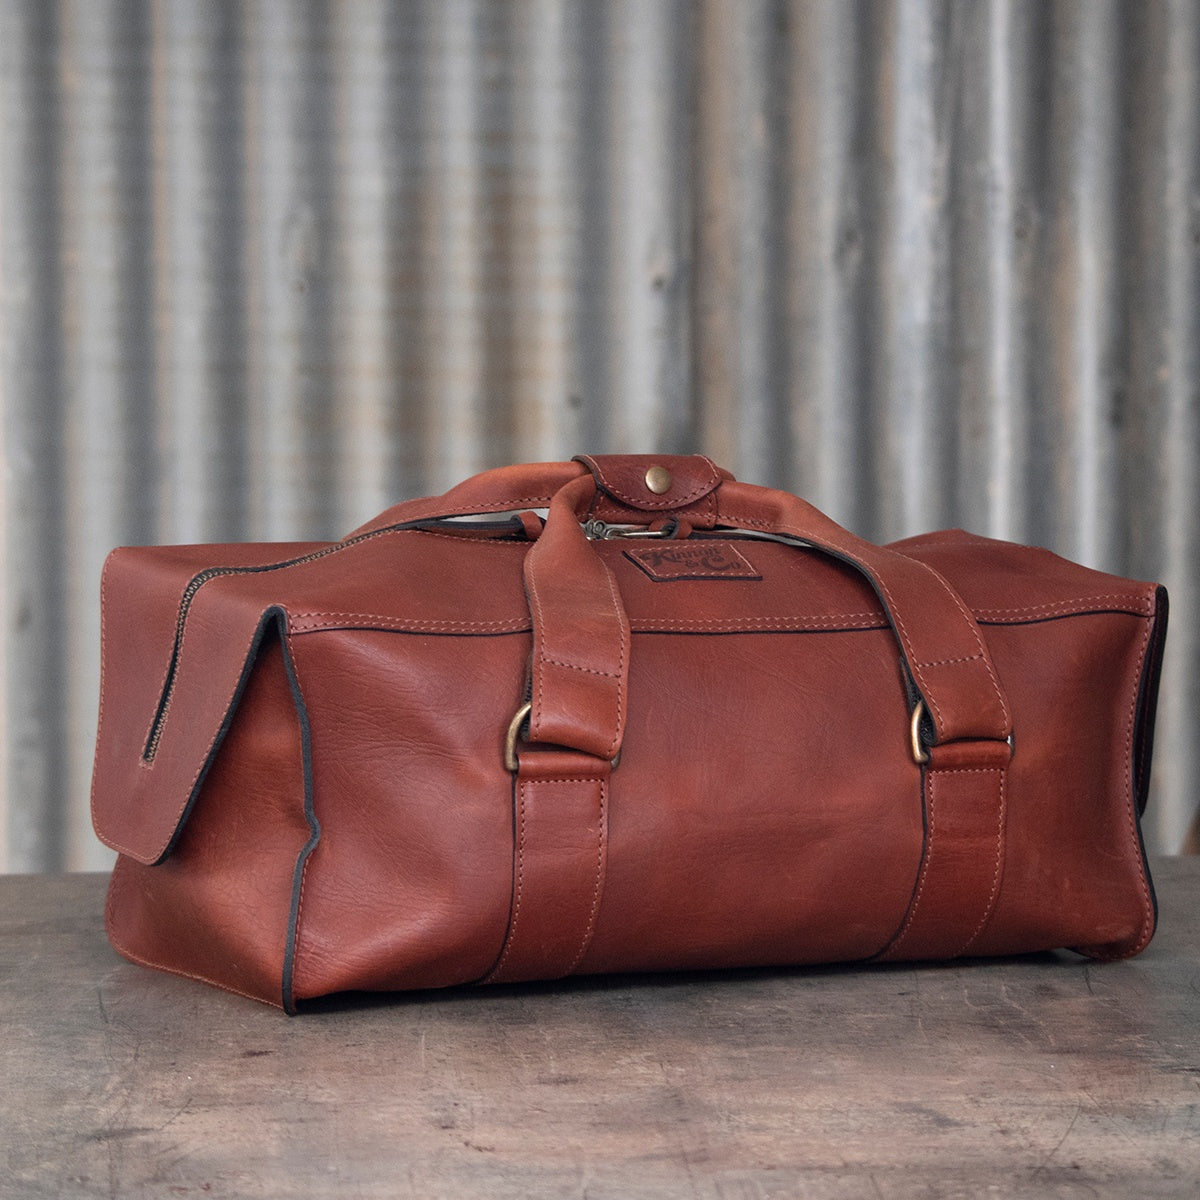 Leather Weekender Bag - Small, branded Kinnon and Co